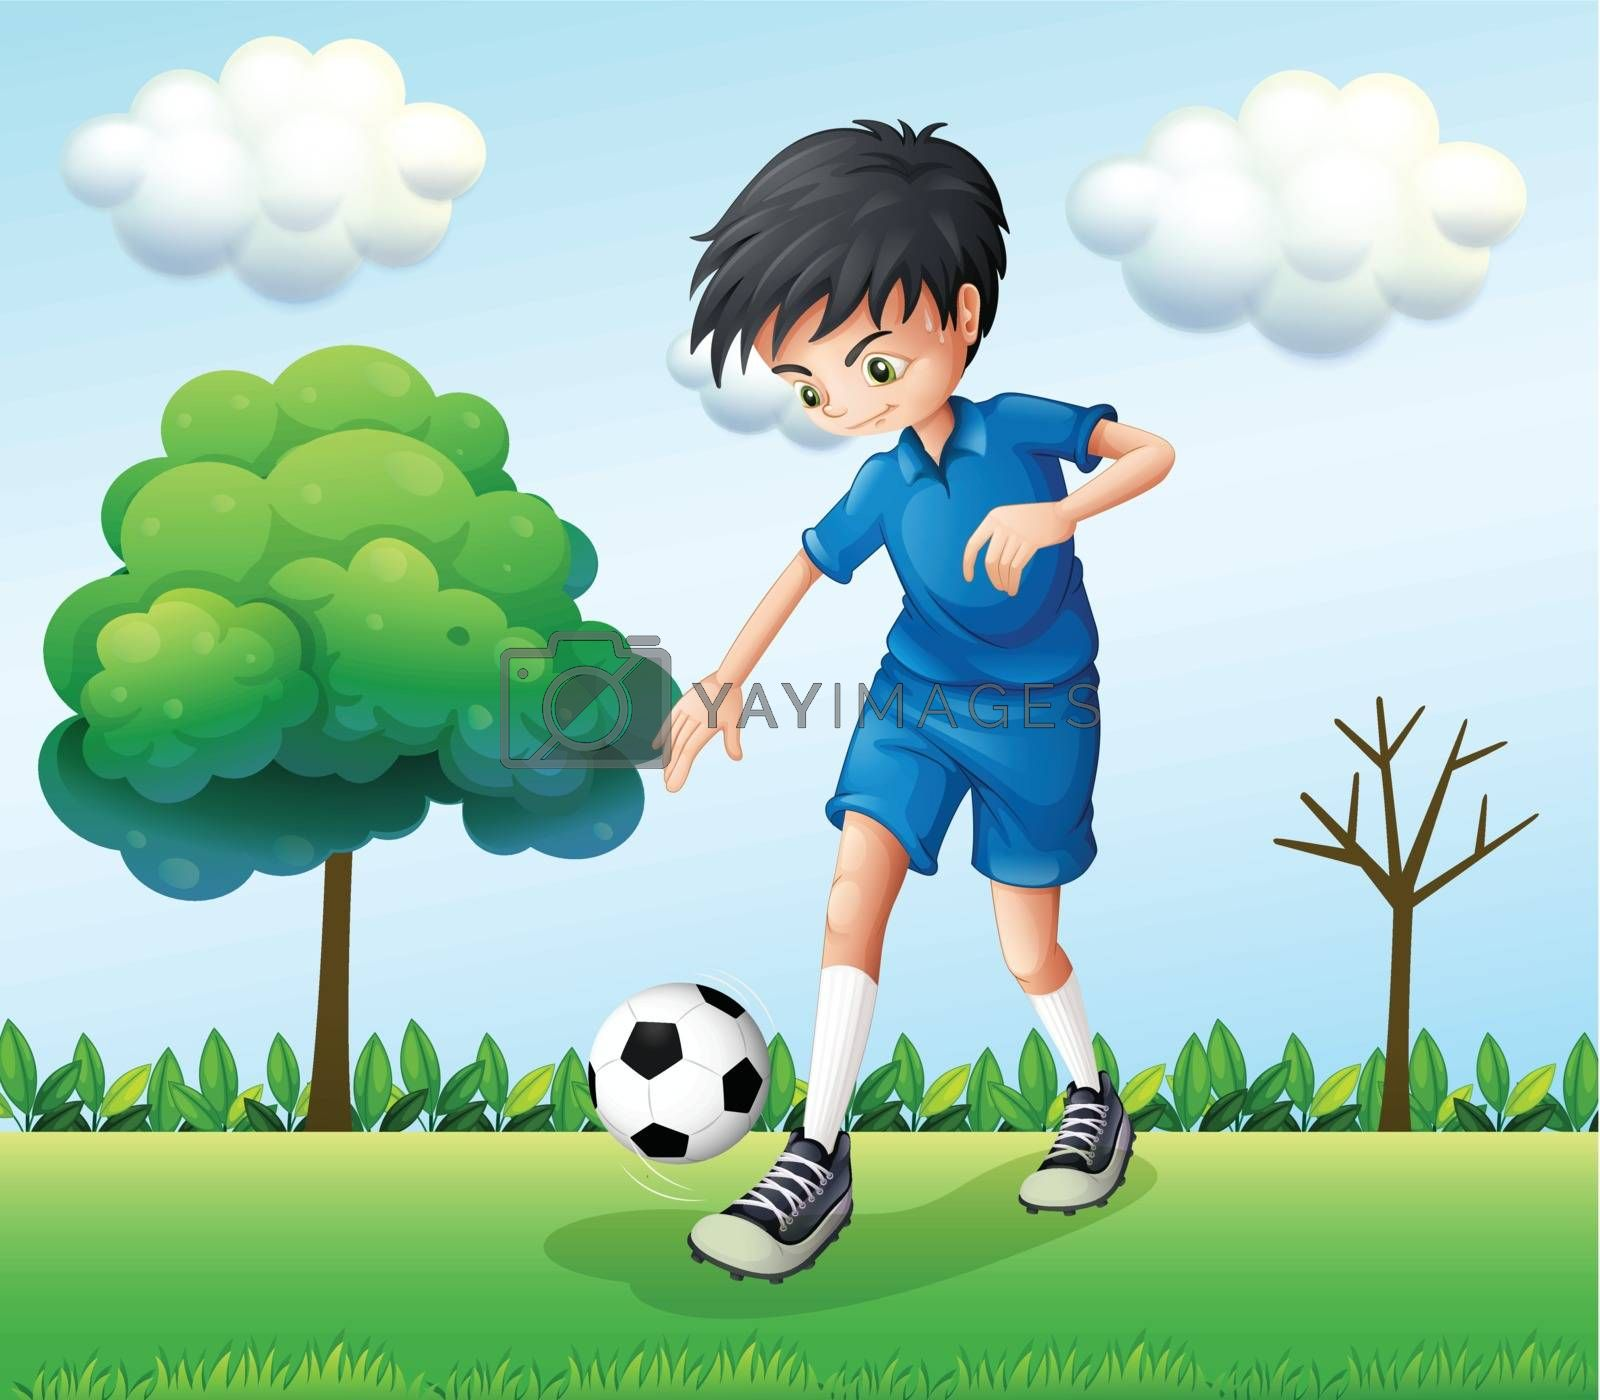 Illustration of a football player wearing his blue uniform